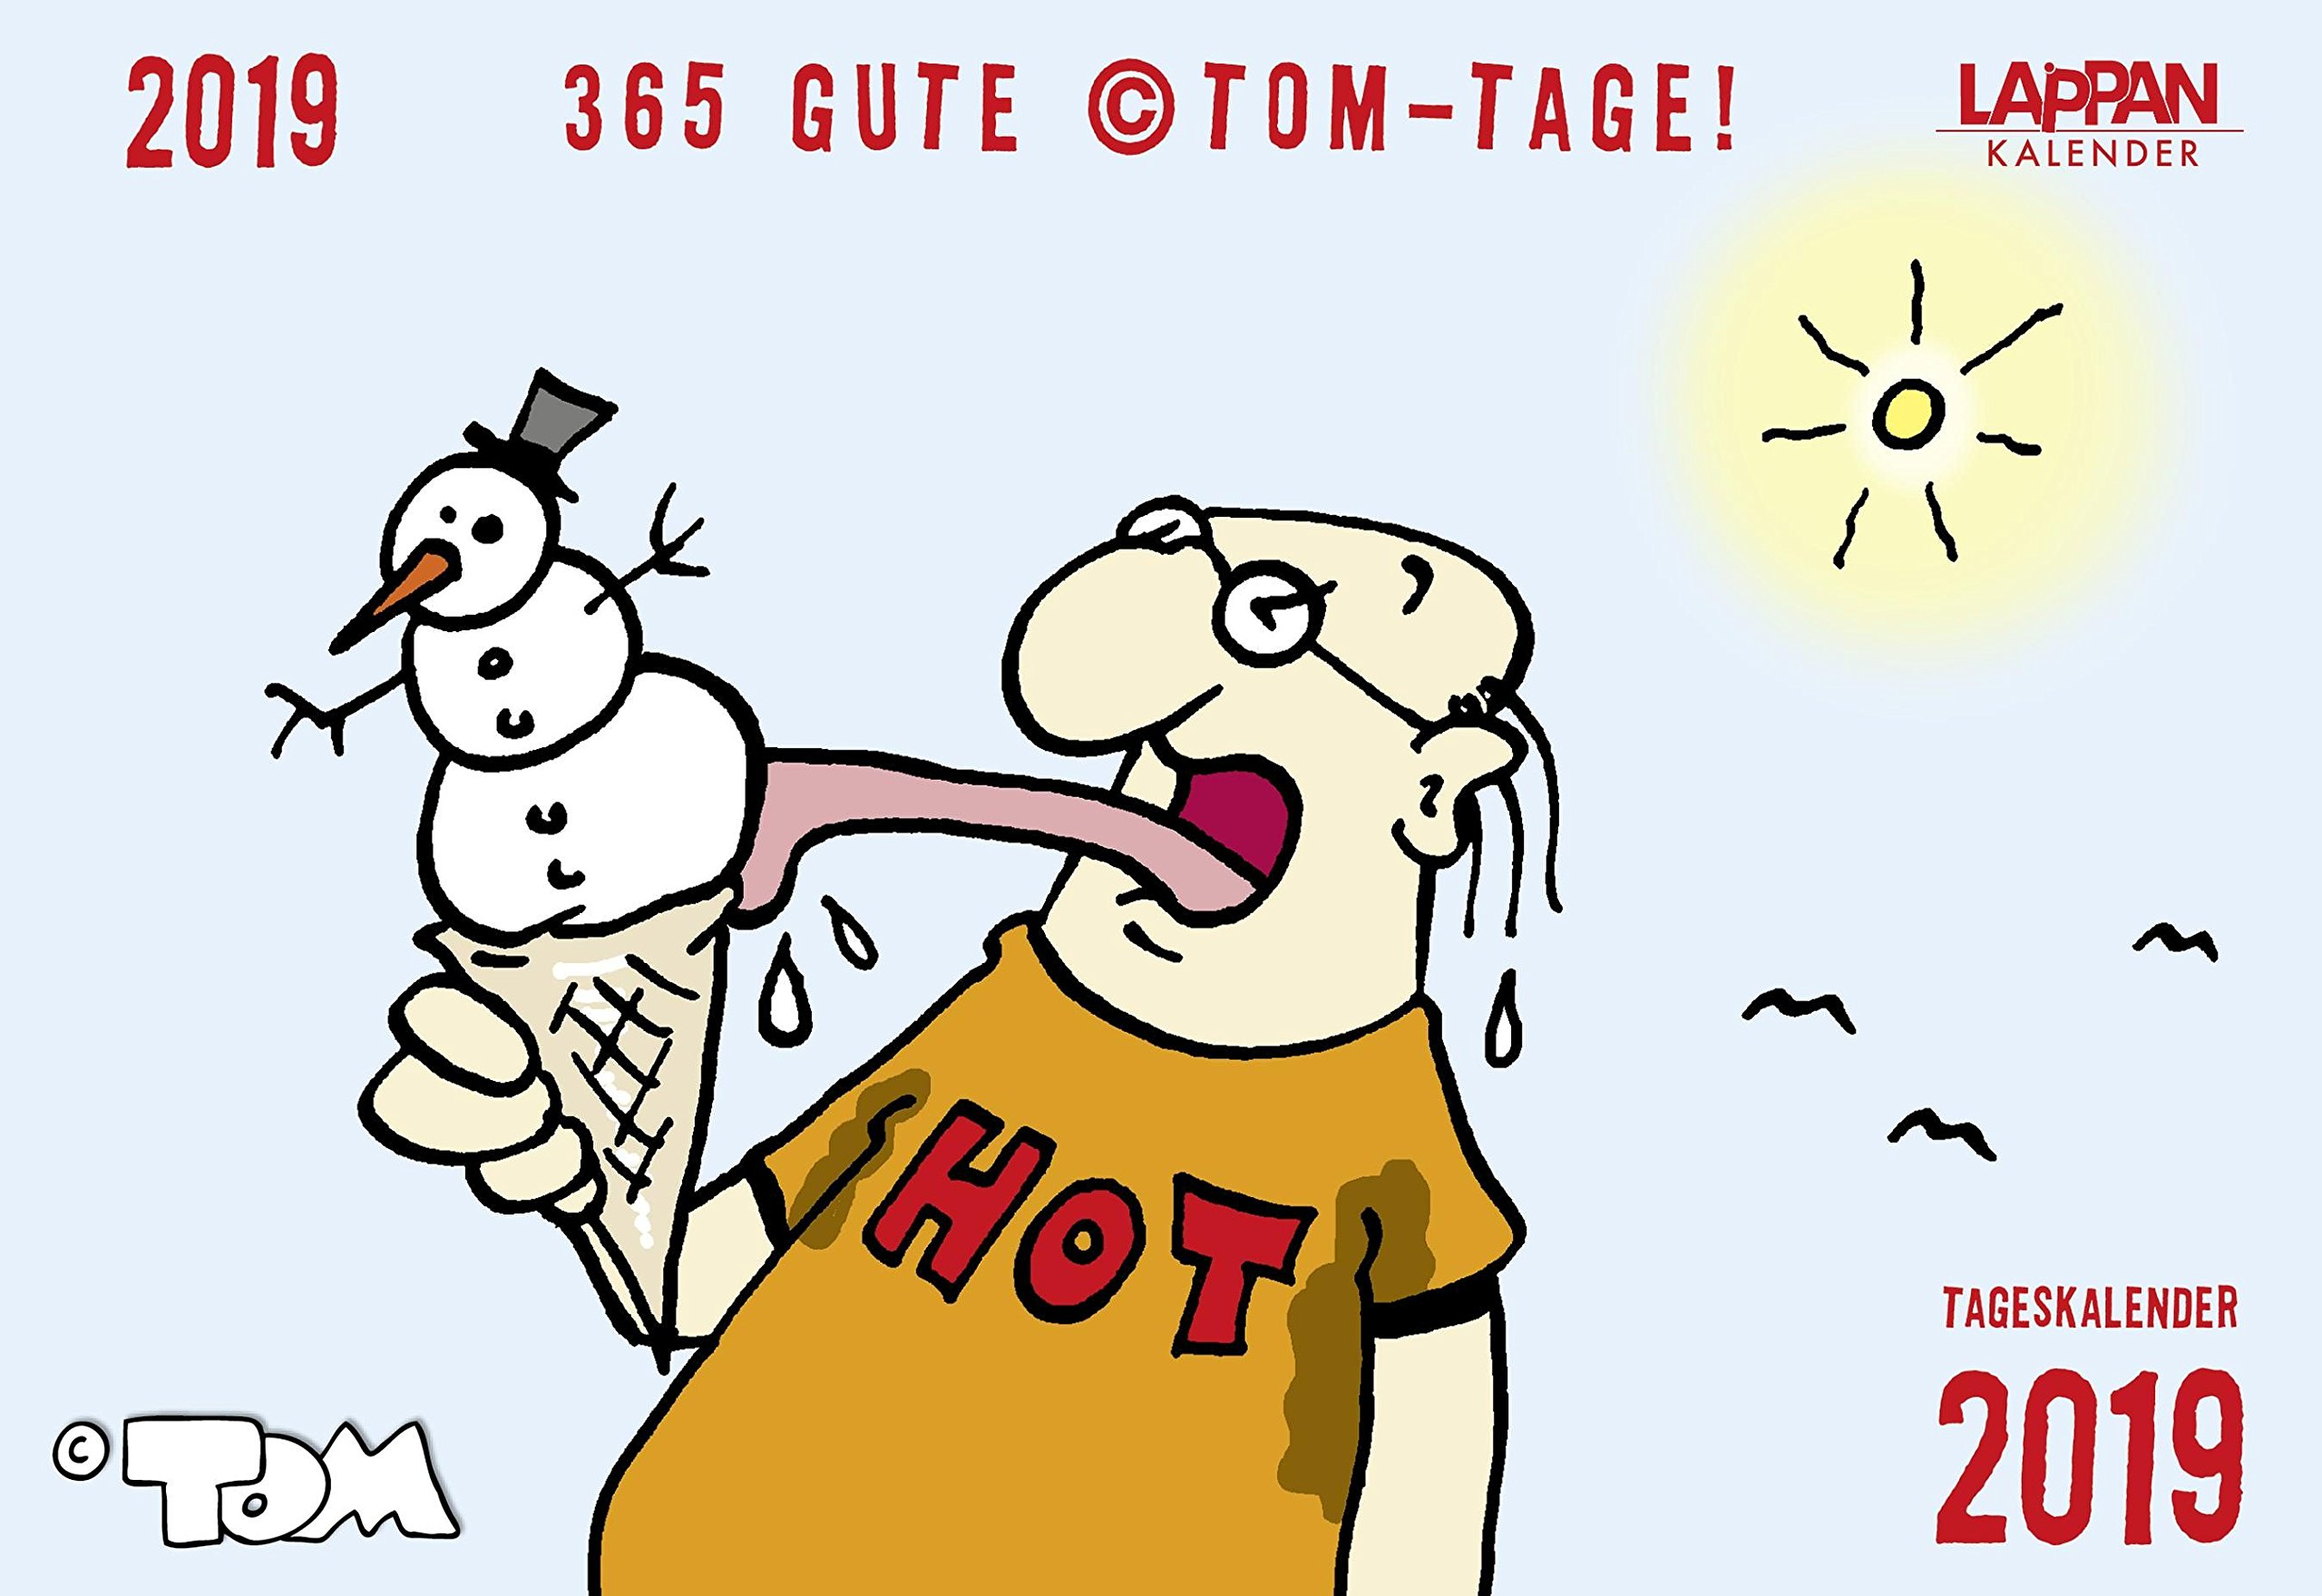 365 GUTE ©TOM-TAGE! 2019: Tageskalender Kalender – 22. Mai 2018 Lappan 3830376758 HUMOR / General NON-CLASSIFIABLE